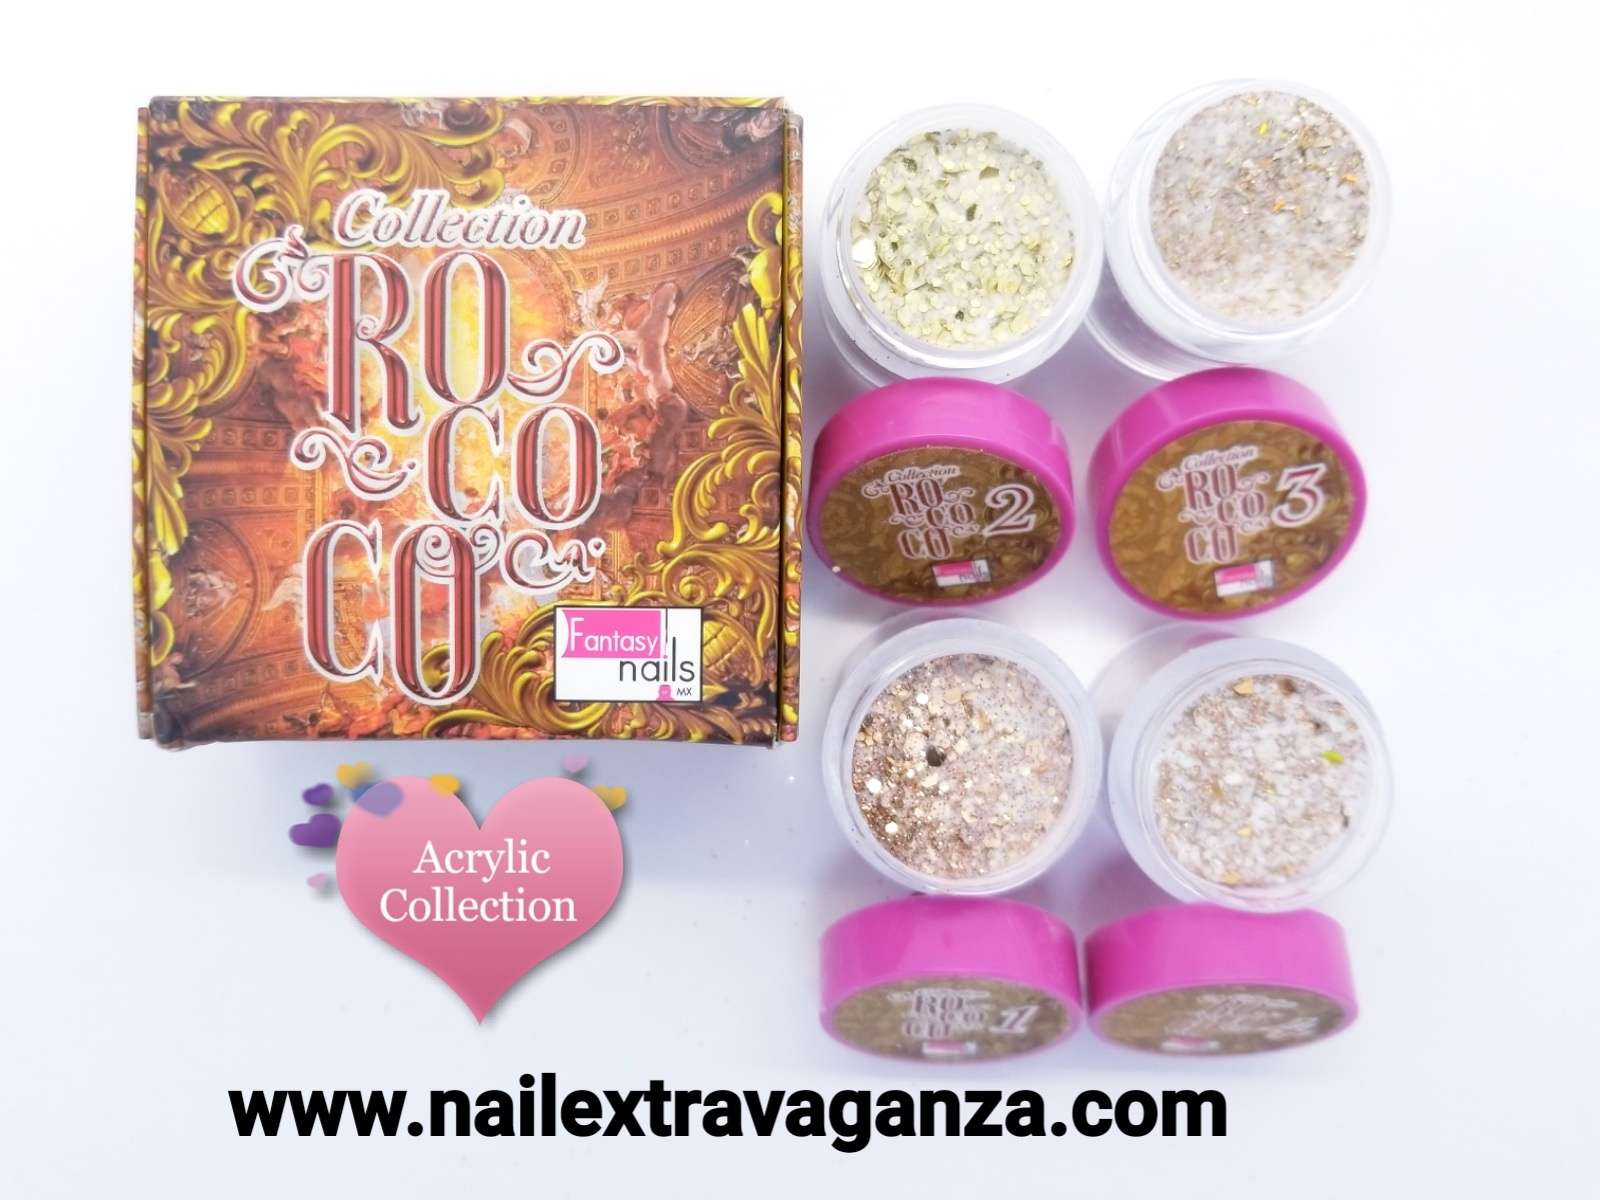 A00 Fantasy Rococo Gold acrylic collection